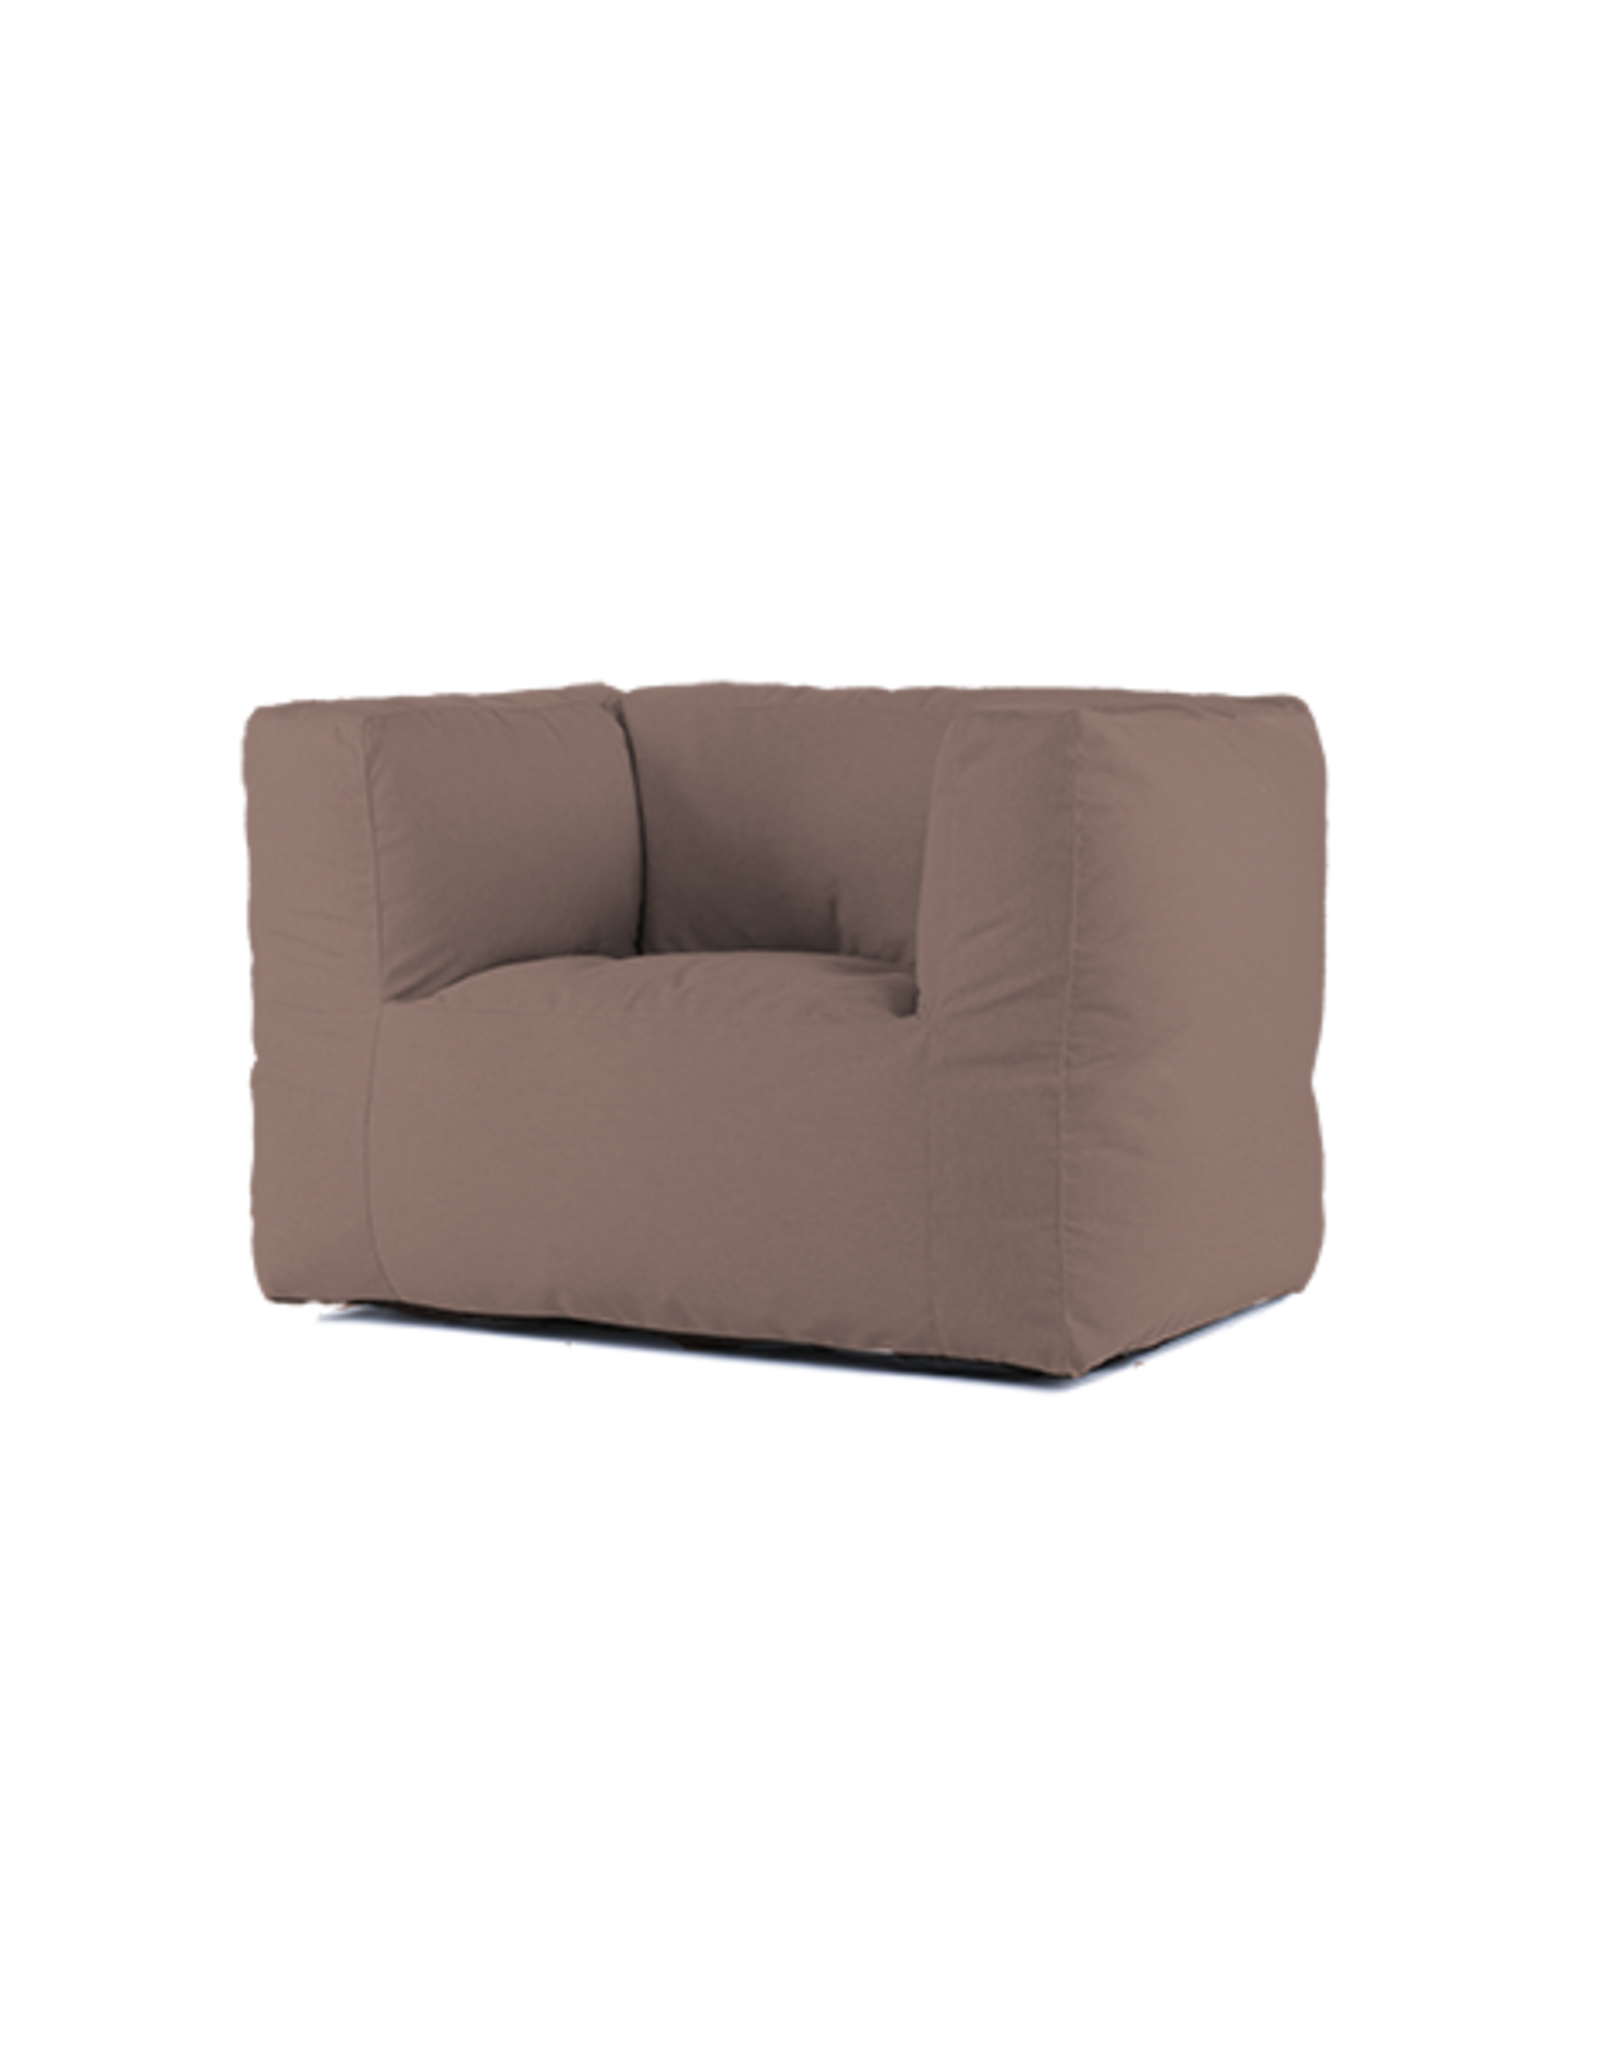 Bryck Bryck - chair - Smooth collection - Light brown